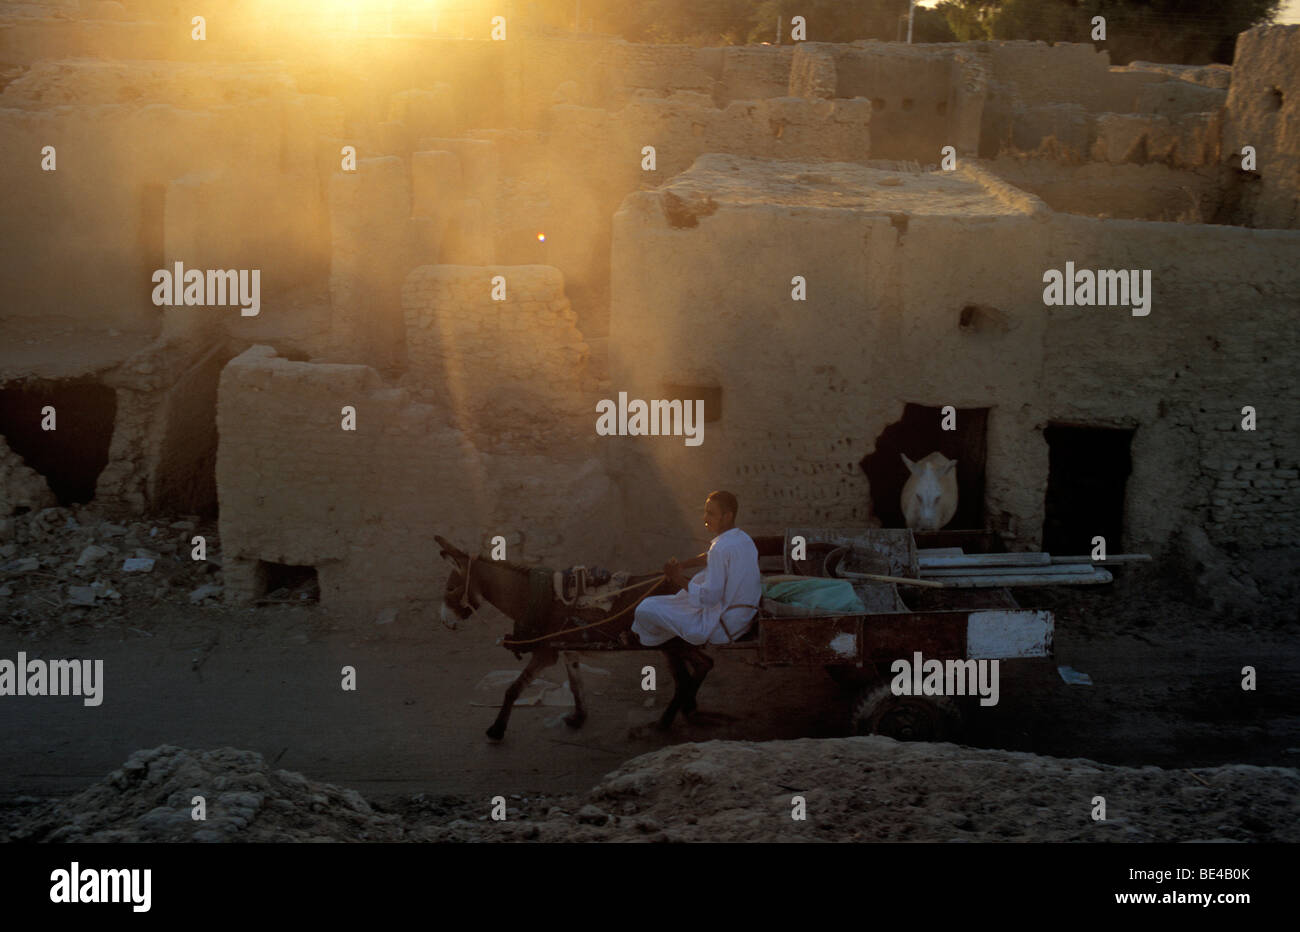 Donkey cart in the last evening light, in the historic centre, Farafra Oasis, Egyptian Sahara, Egypt, Africa - Stock Image